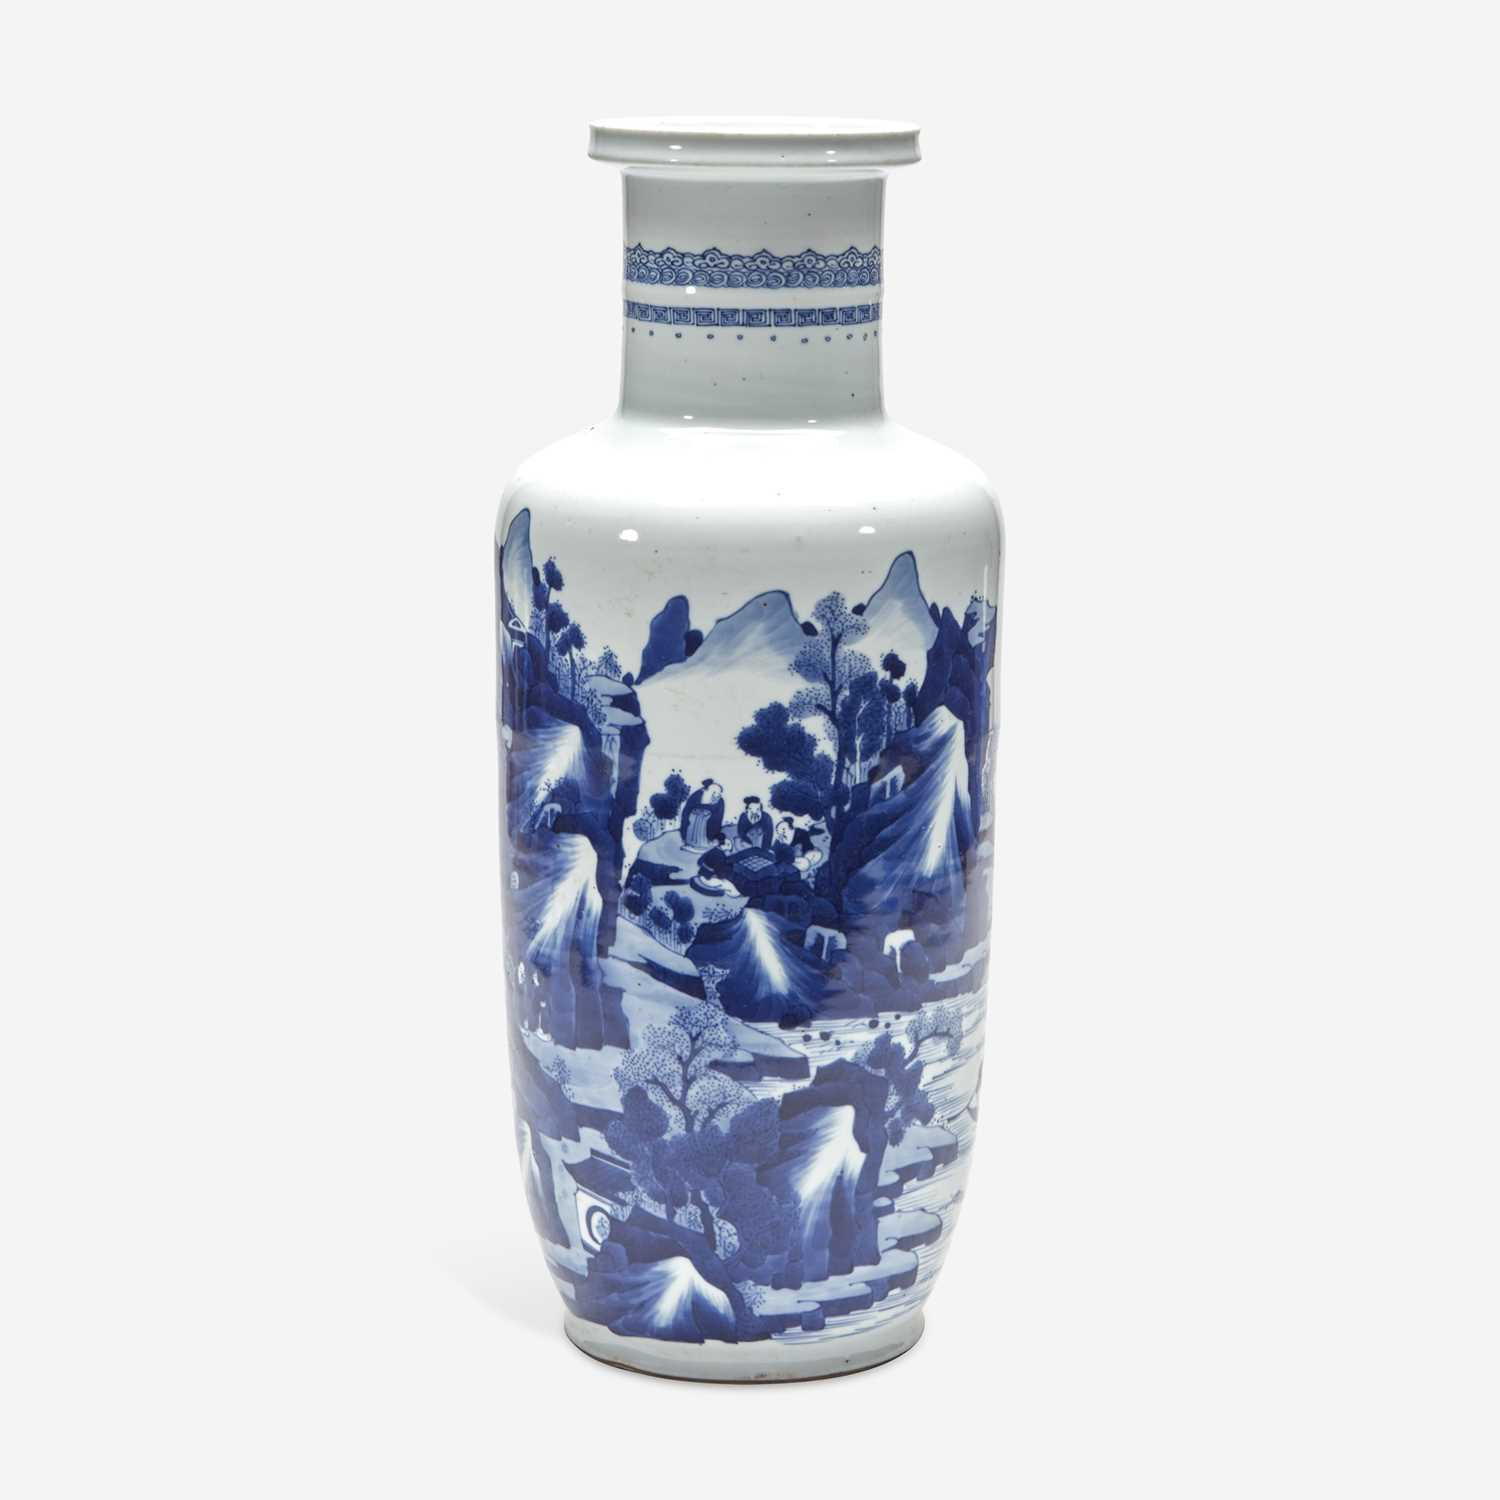 Lot 11 - A Chinese blue and white porcelain rouleau vase 青花山水人物纸槌瓶